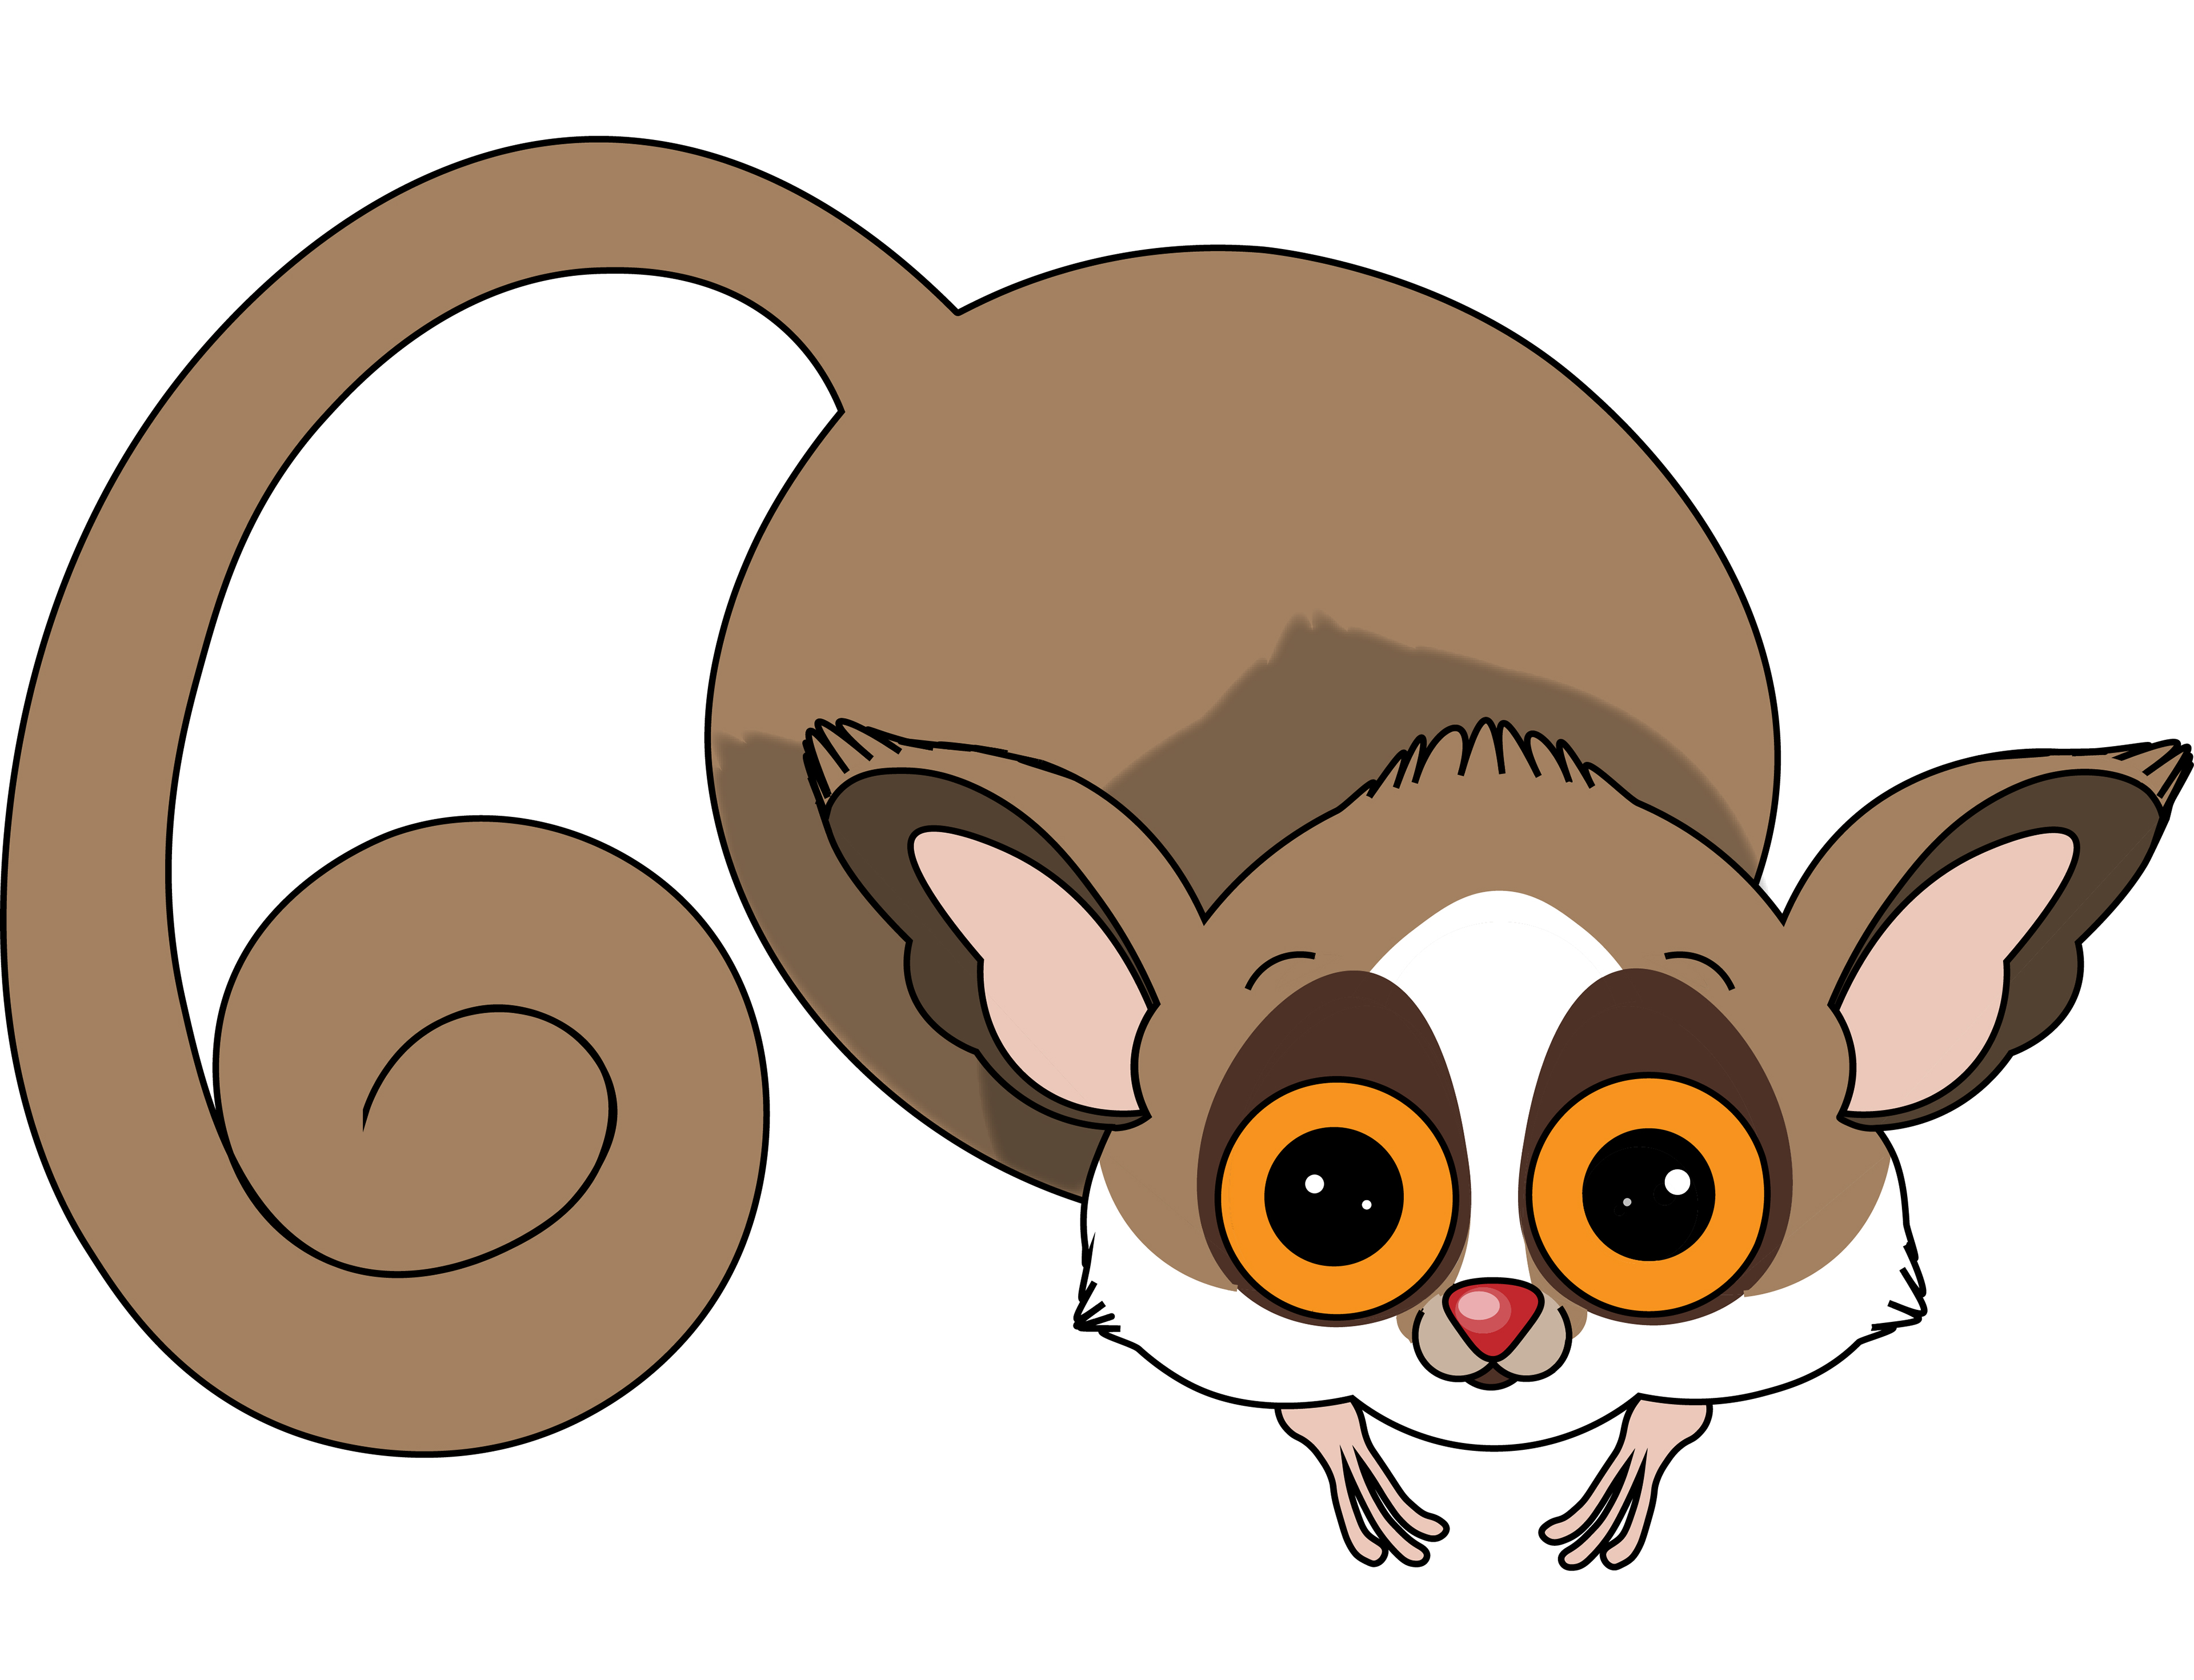 Mouse Lemur Cartoon | www.pixshark.com - Images Galleries ...